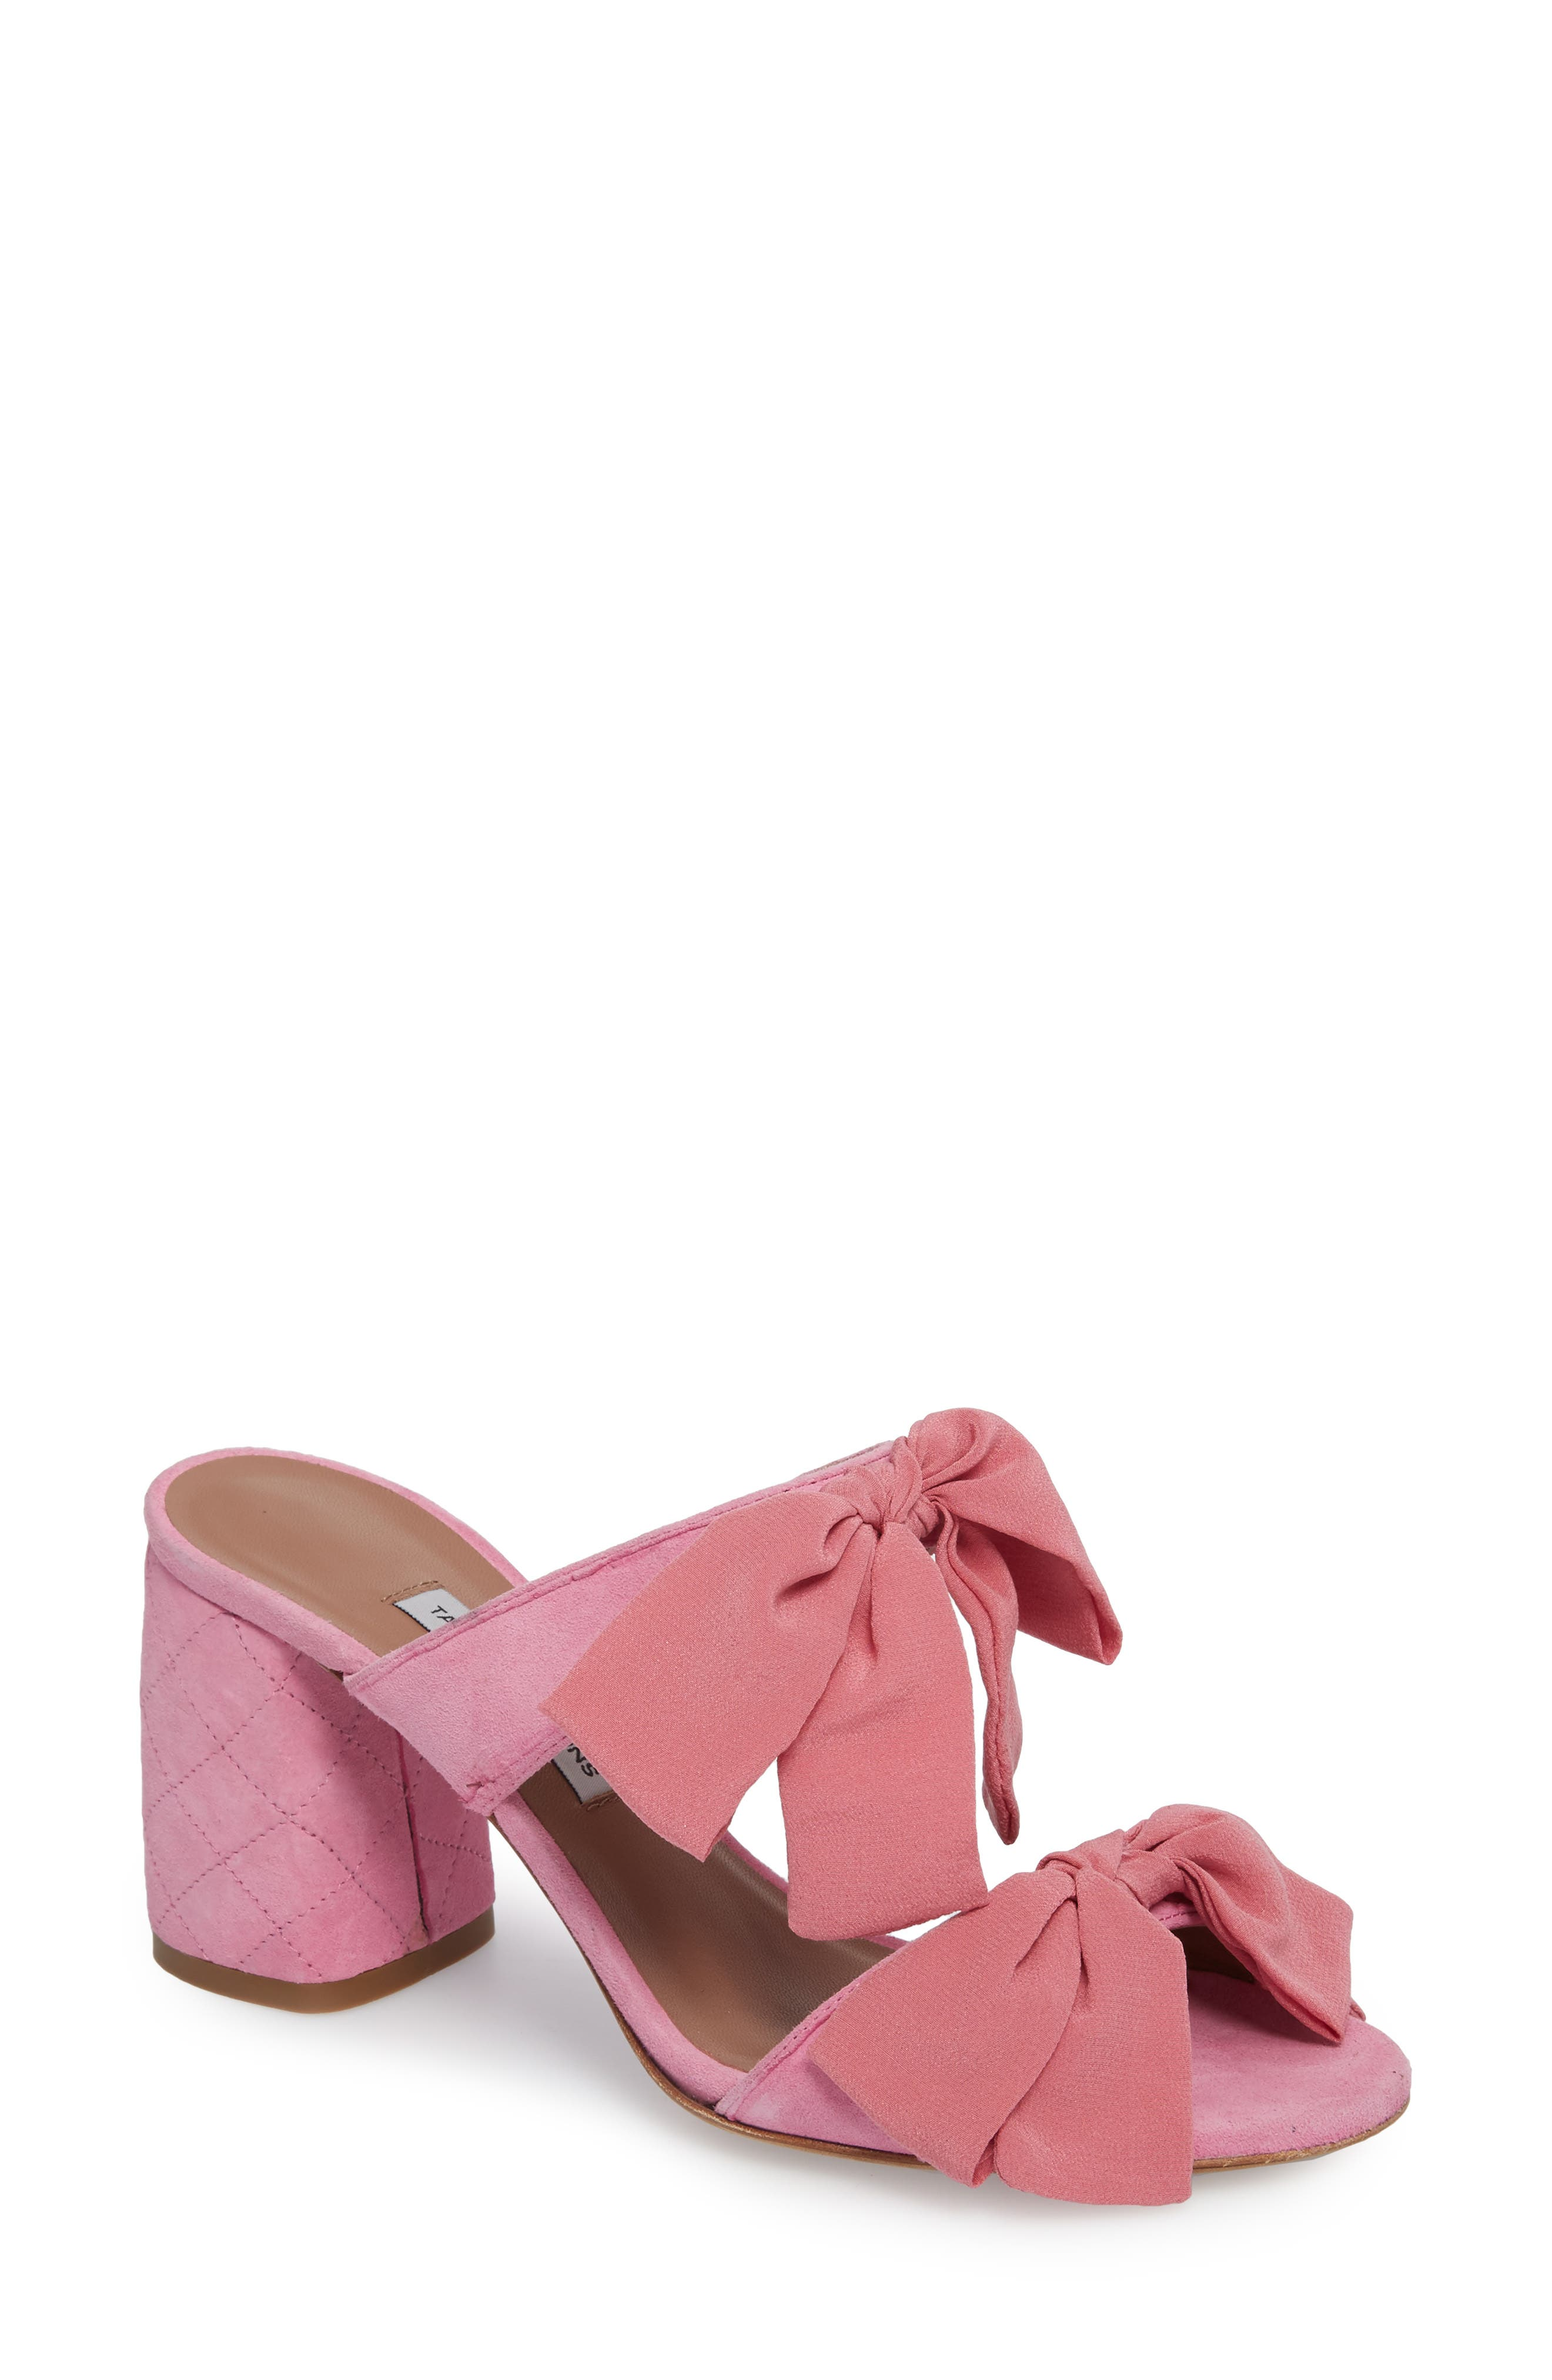 Tabitha Simmons Barbi Bow Sandal (Women)